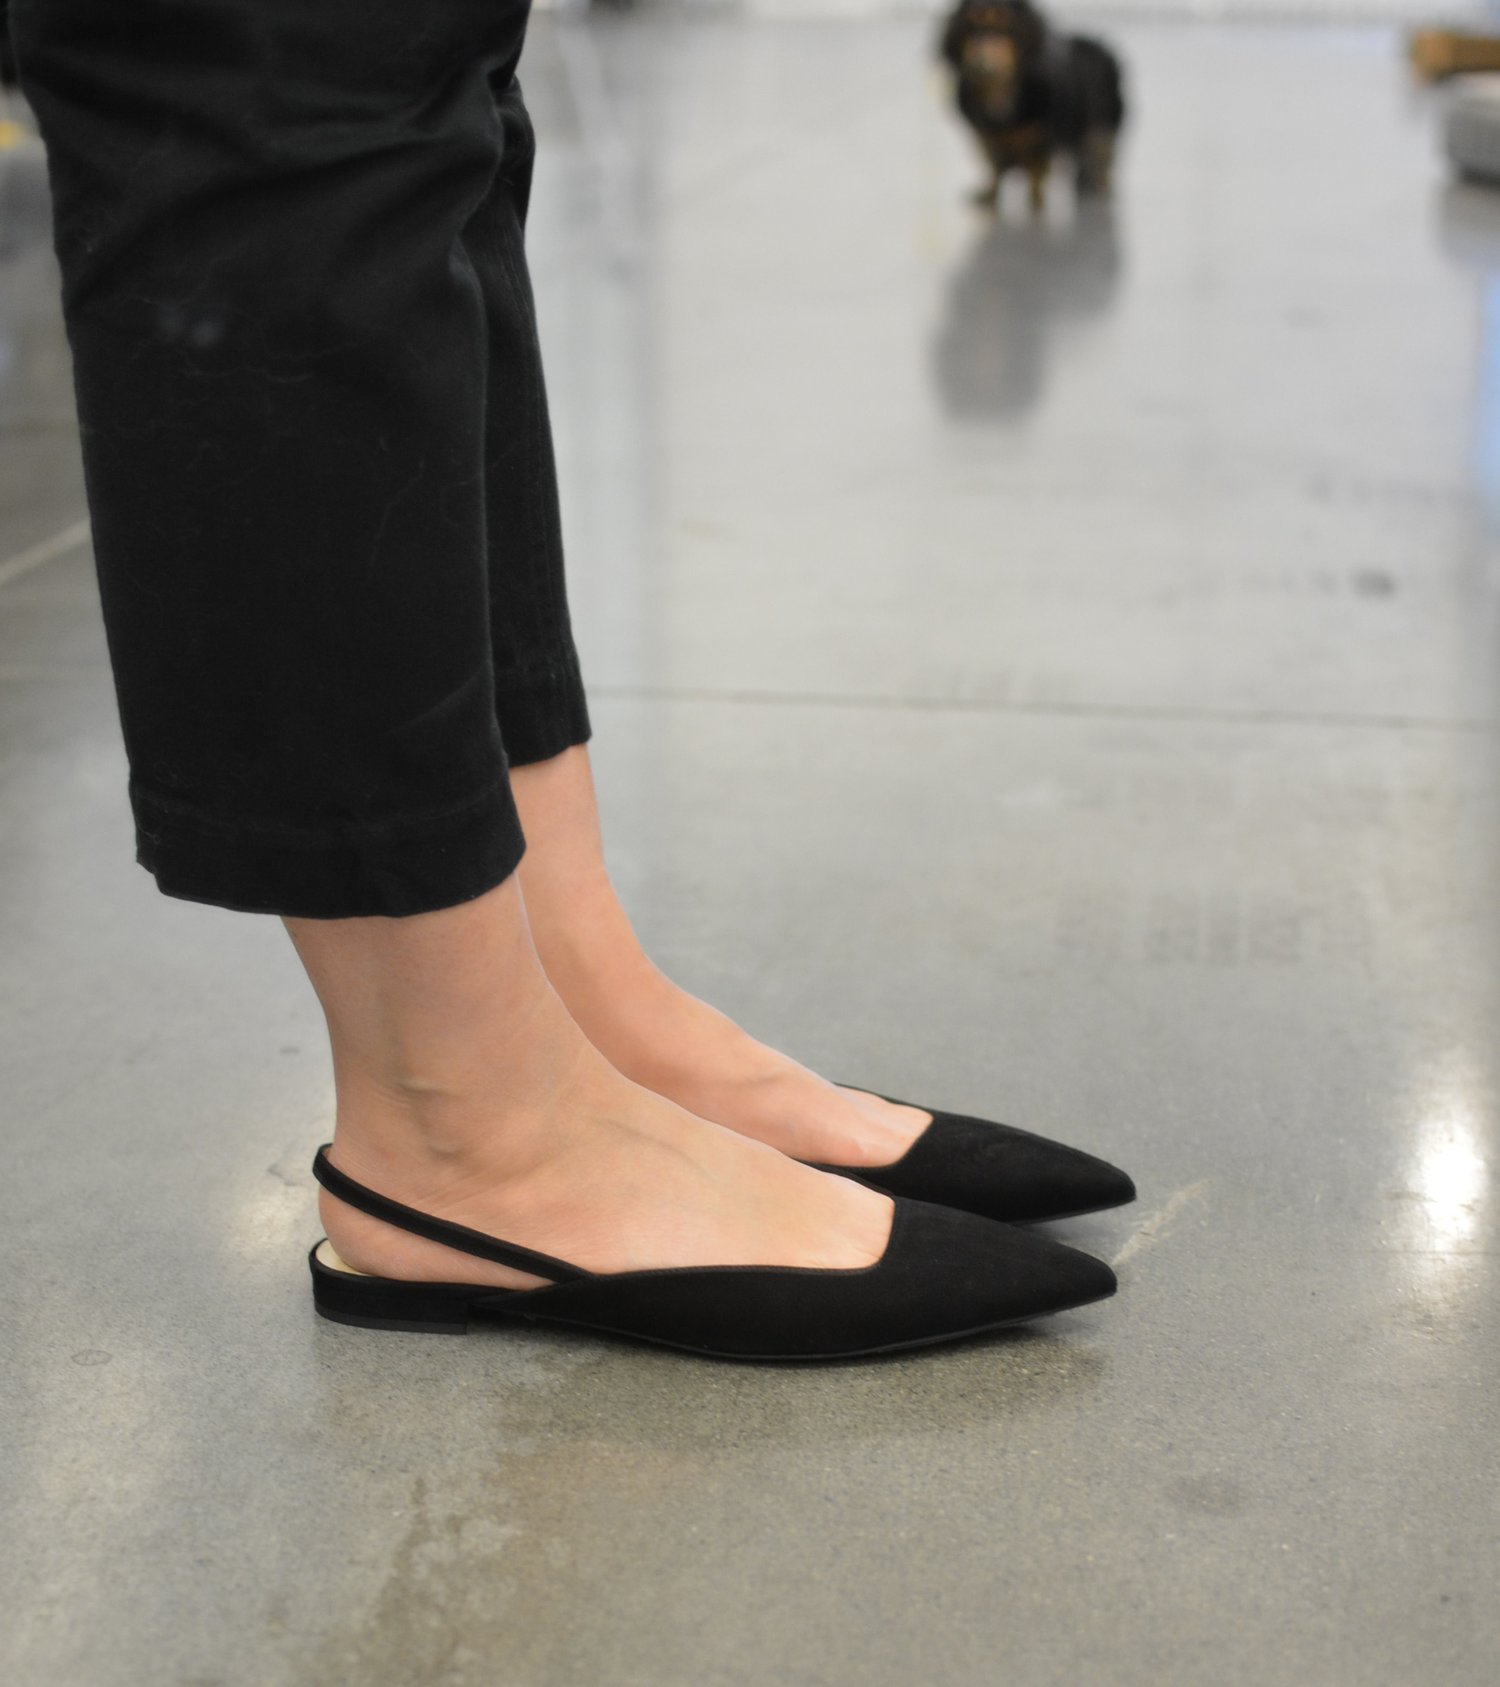 Everlane+Review+The+Editor+Slingback+shoe+(1+of+2)-min